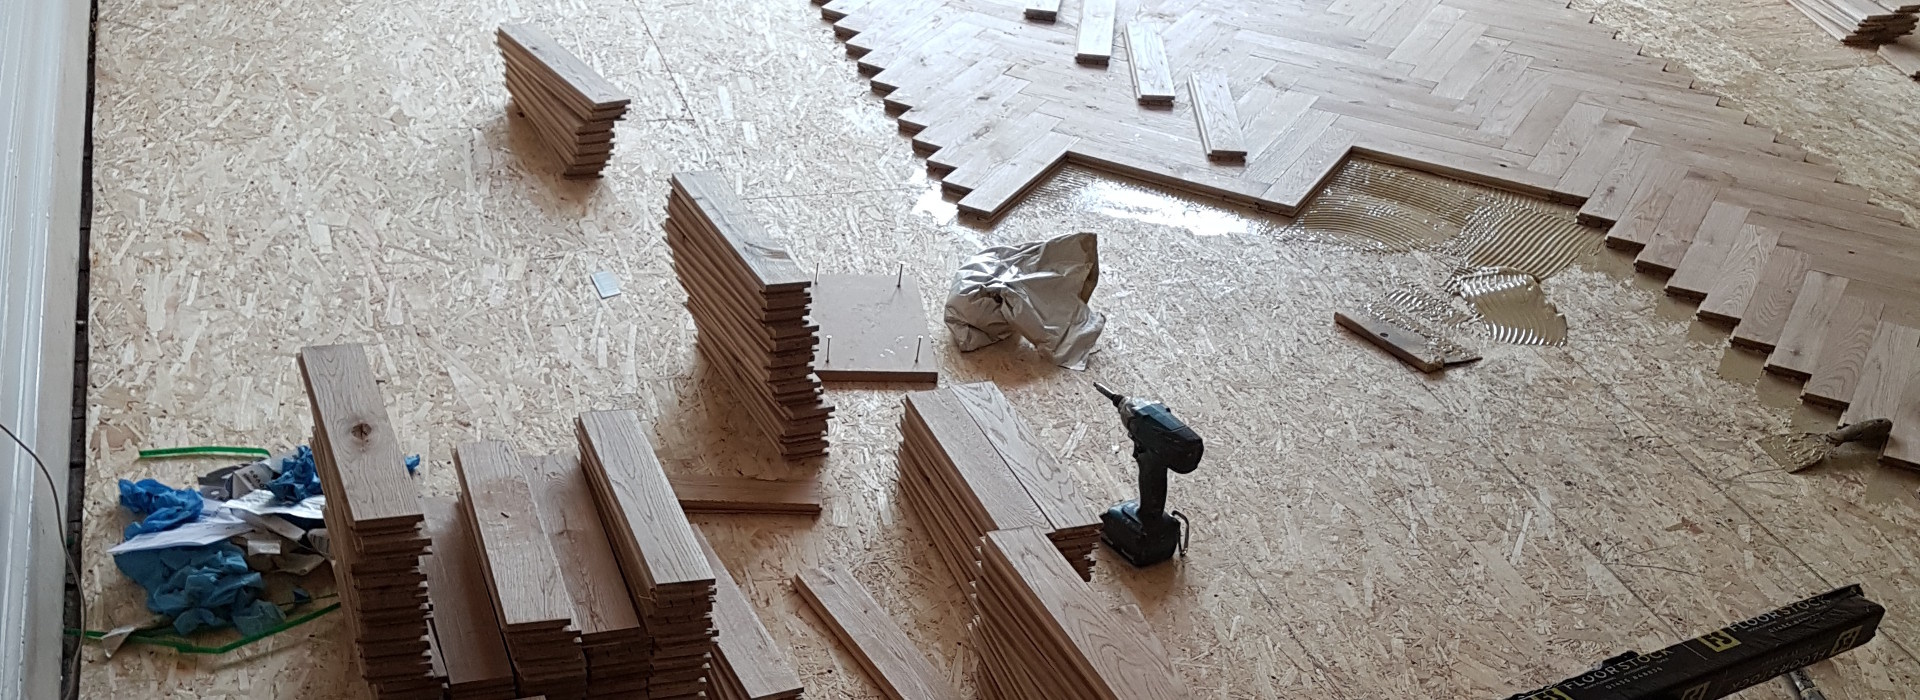 Flooring specialists in Glasgow